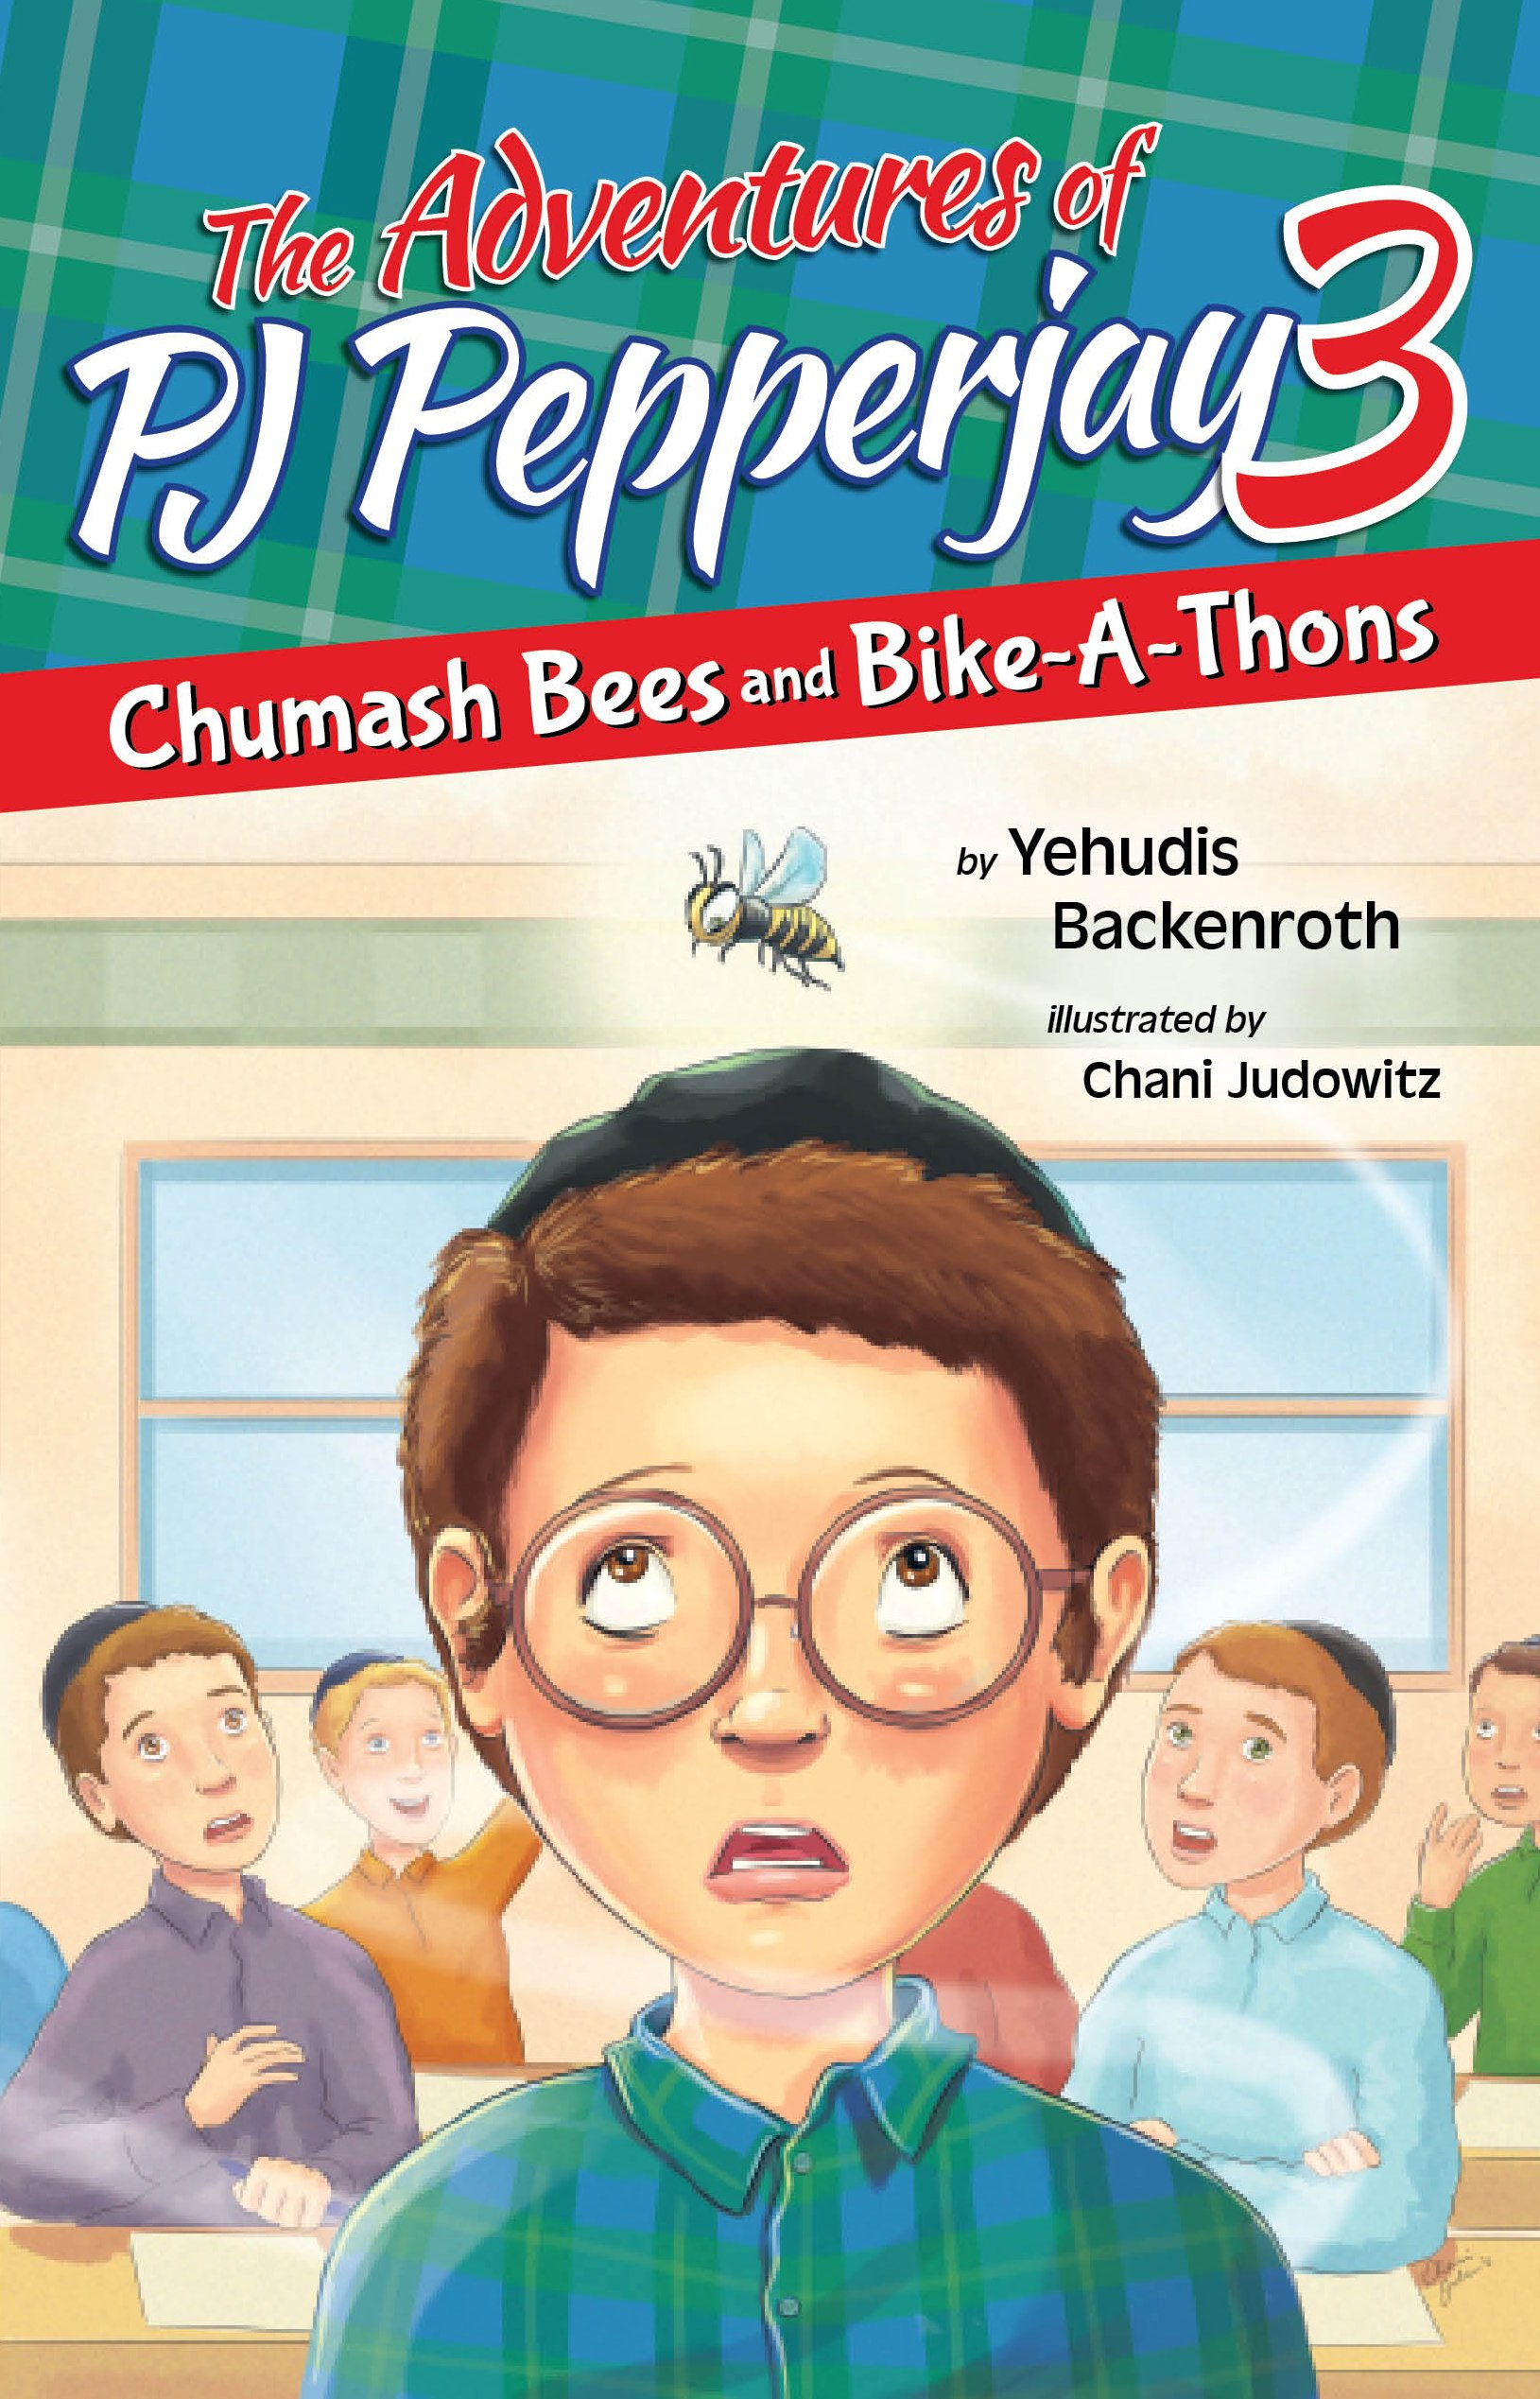 Download The Adventures of PJ Pepperjay #3:Chumash Bees and Bike-A-Thons PDF